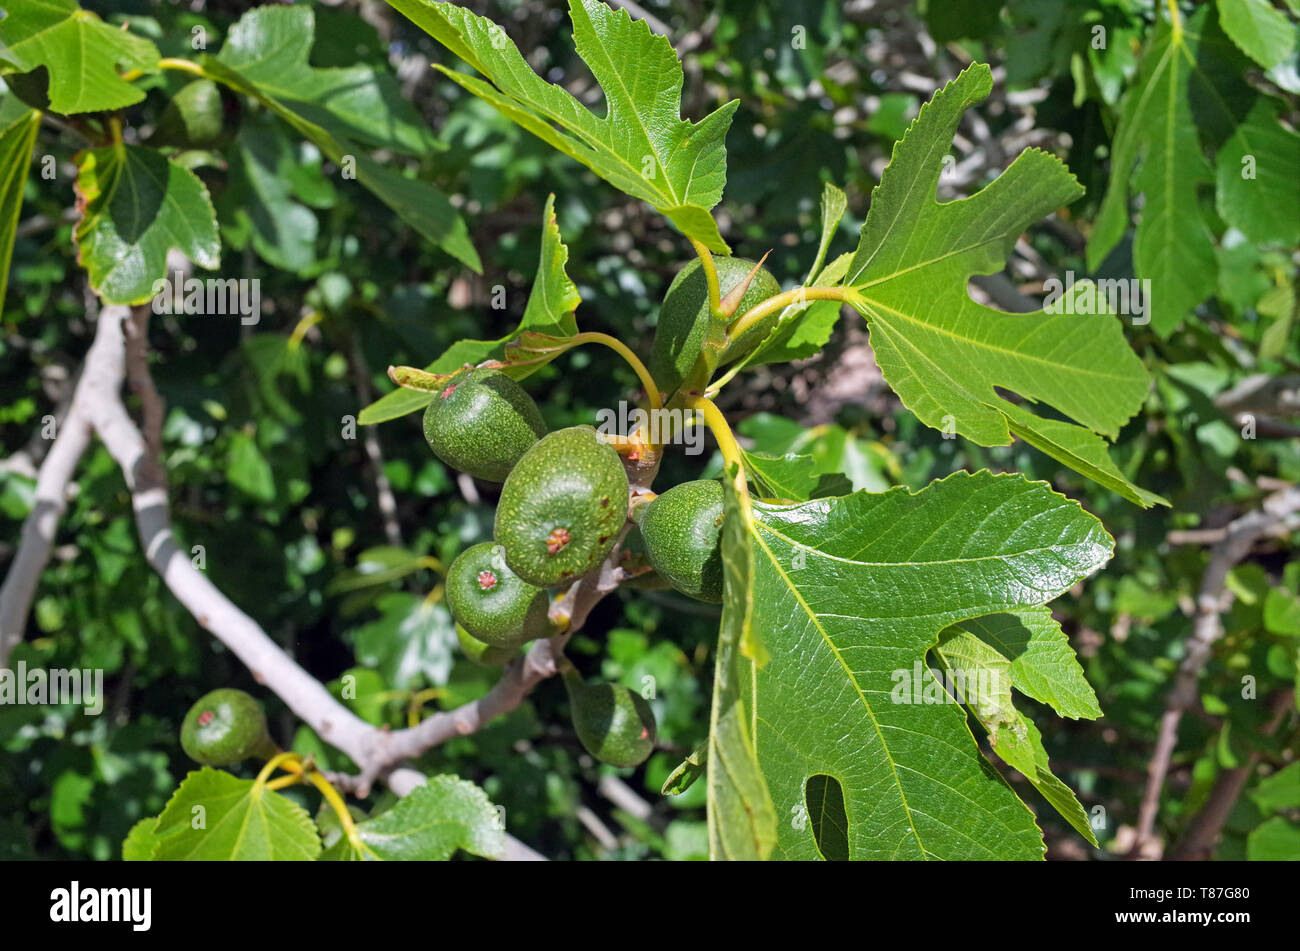 Ficus carica fruit close-up Photo Stock